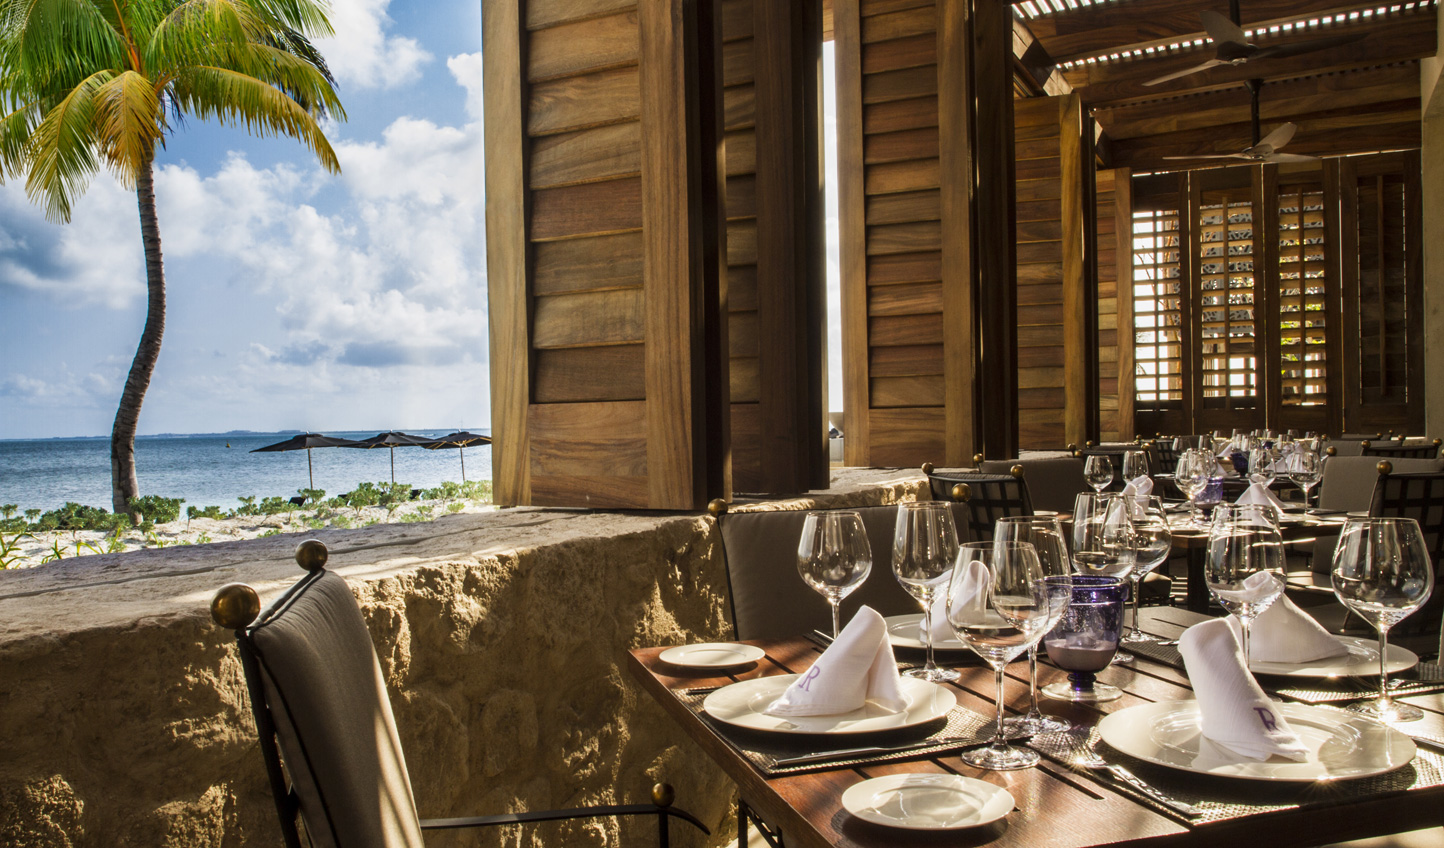 Dine al-fresco and feel the sea breeze on your skin